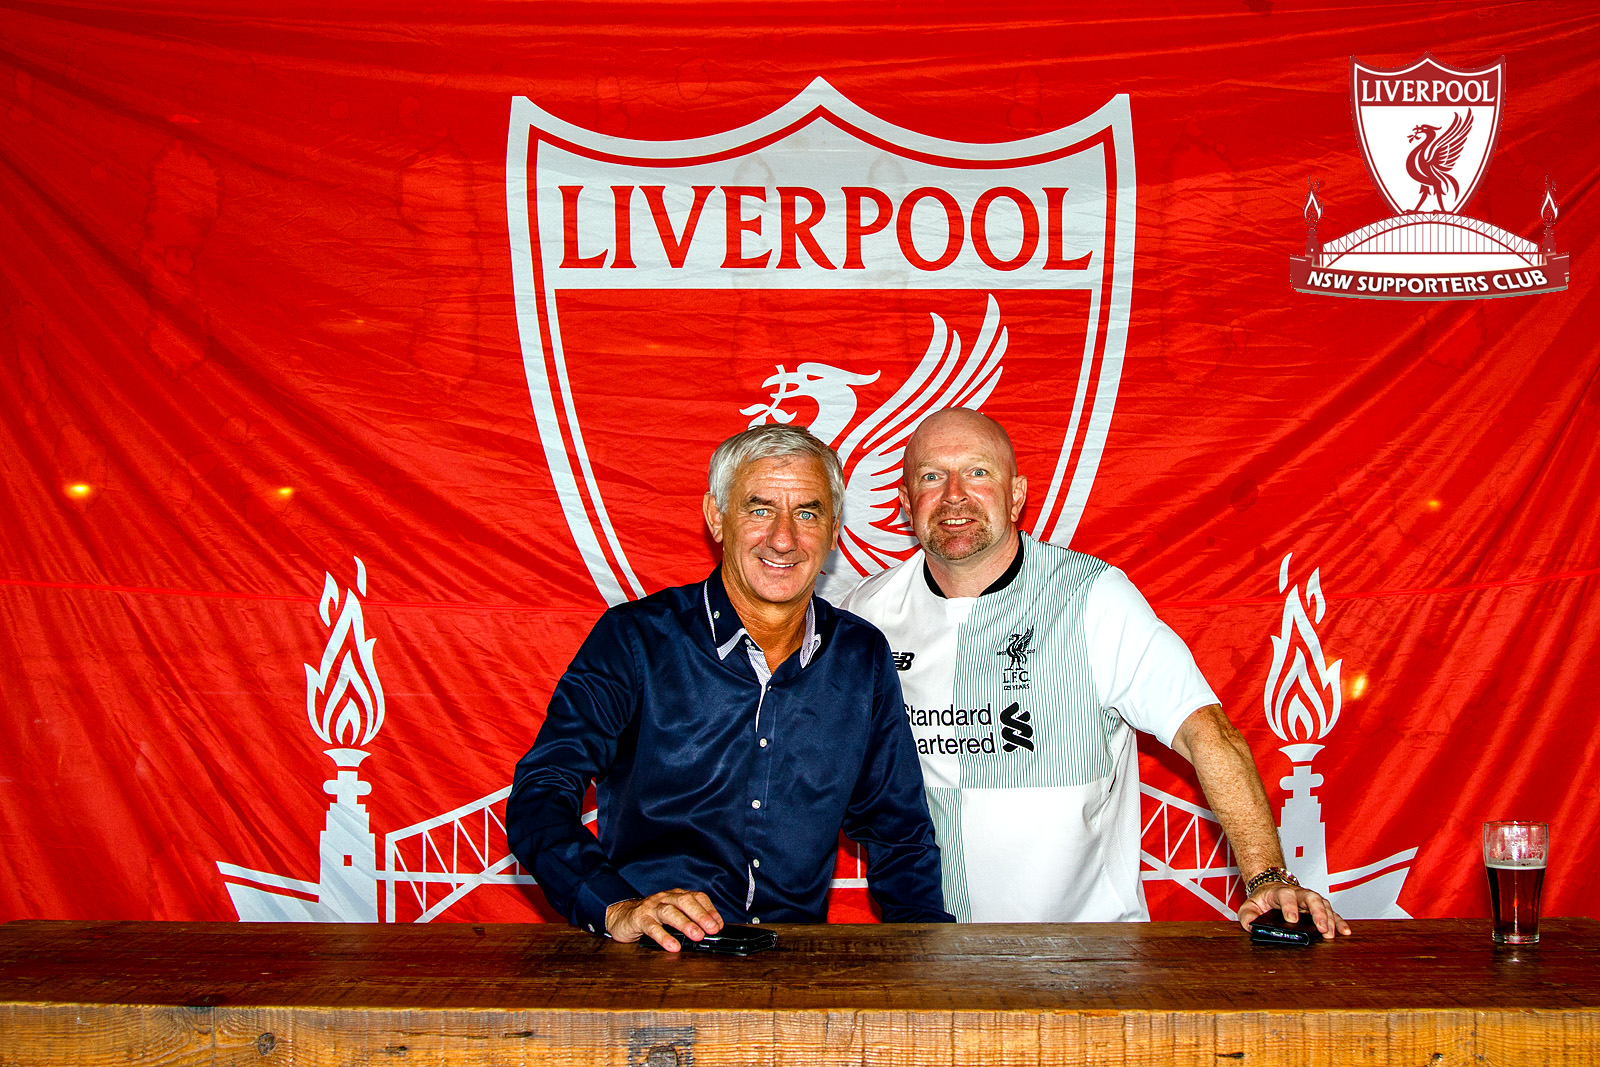 Ian rush 5x newcastle meet greet official lfcnsw supporters club m4hsunfo